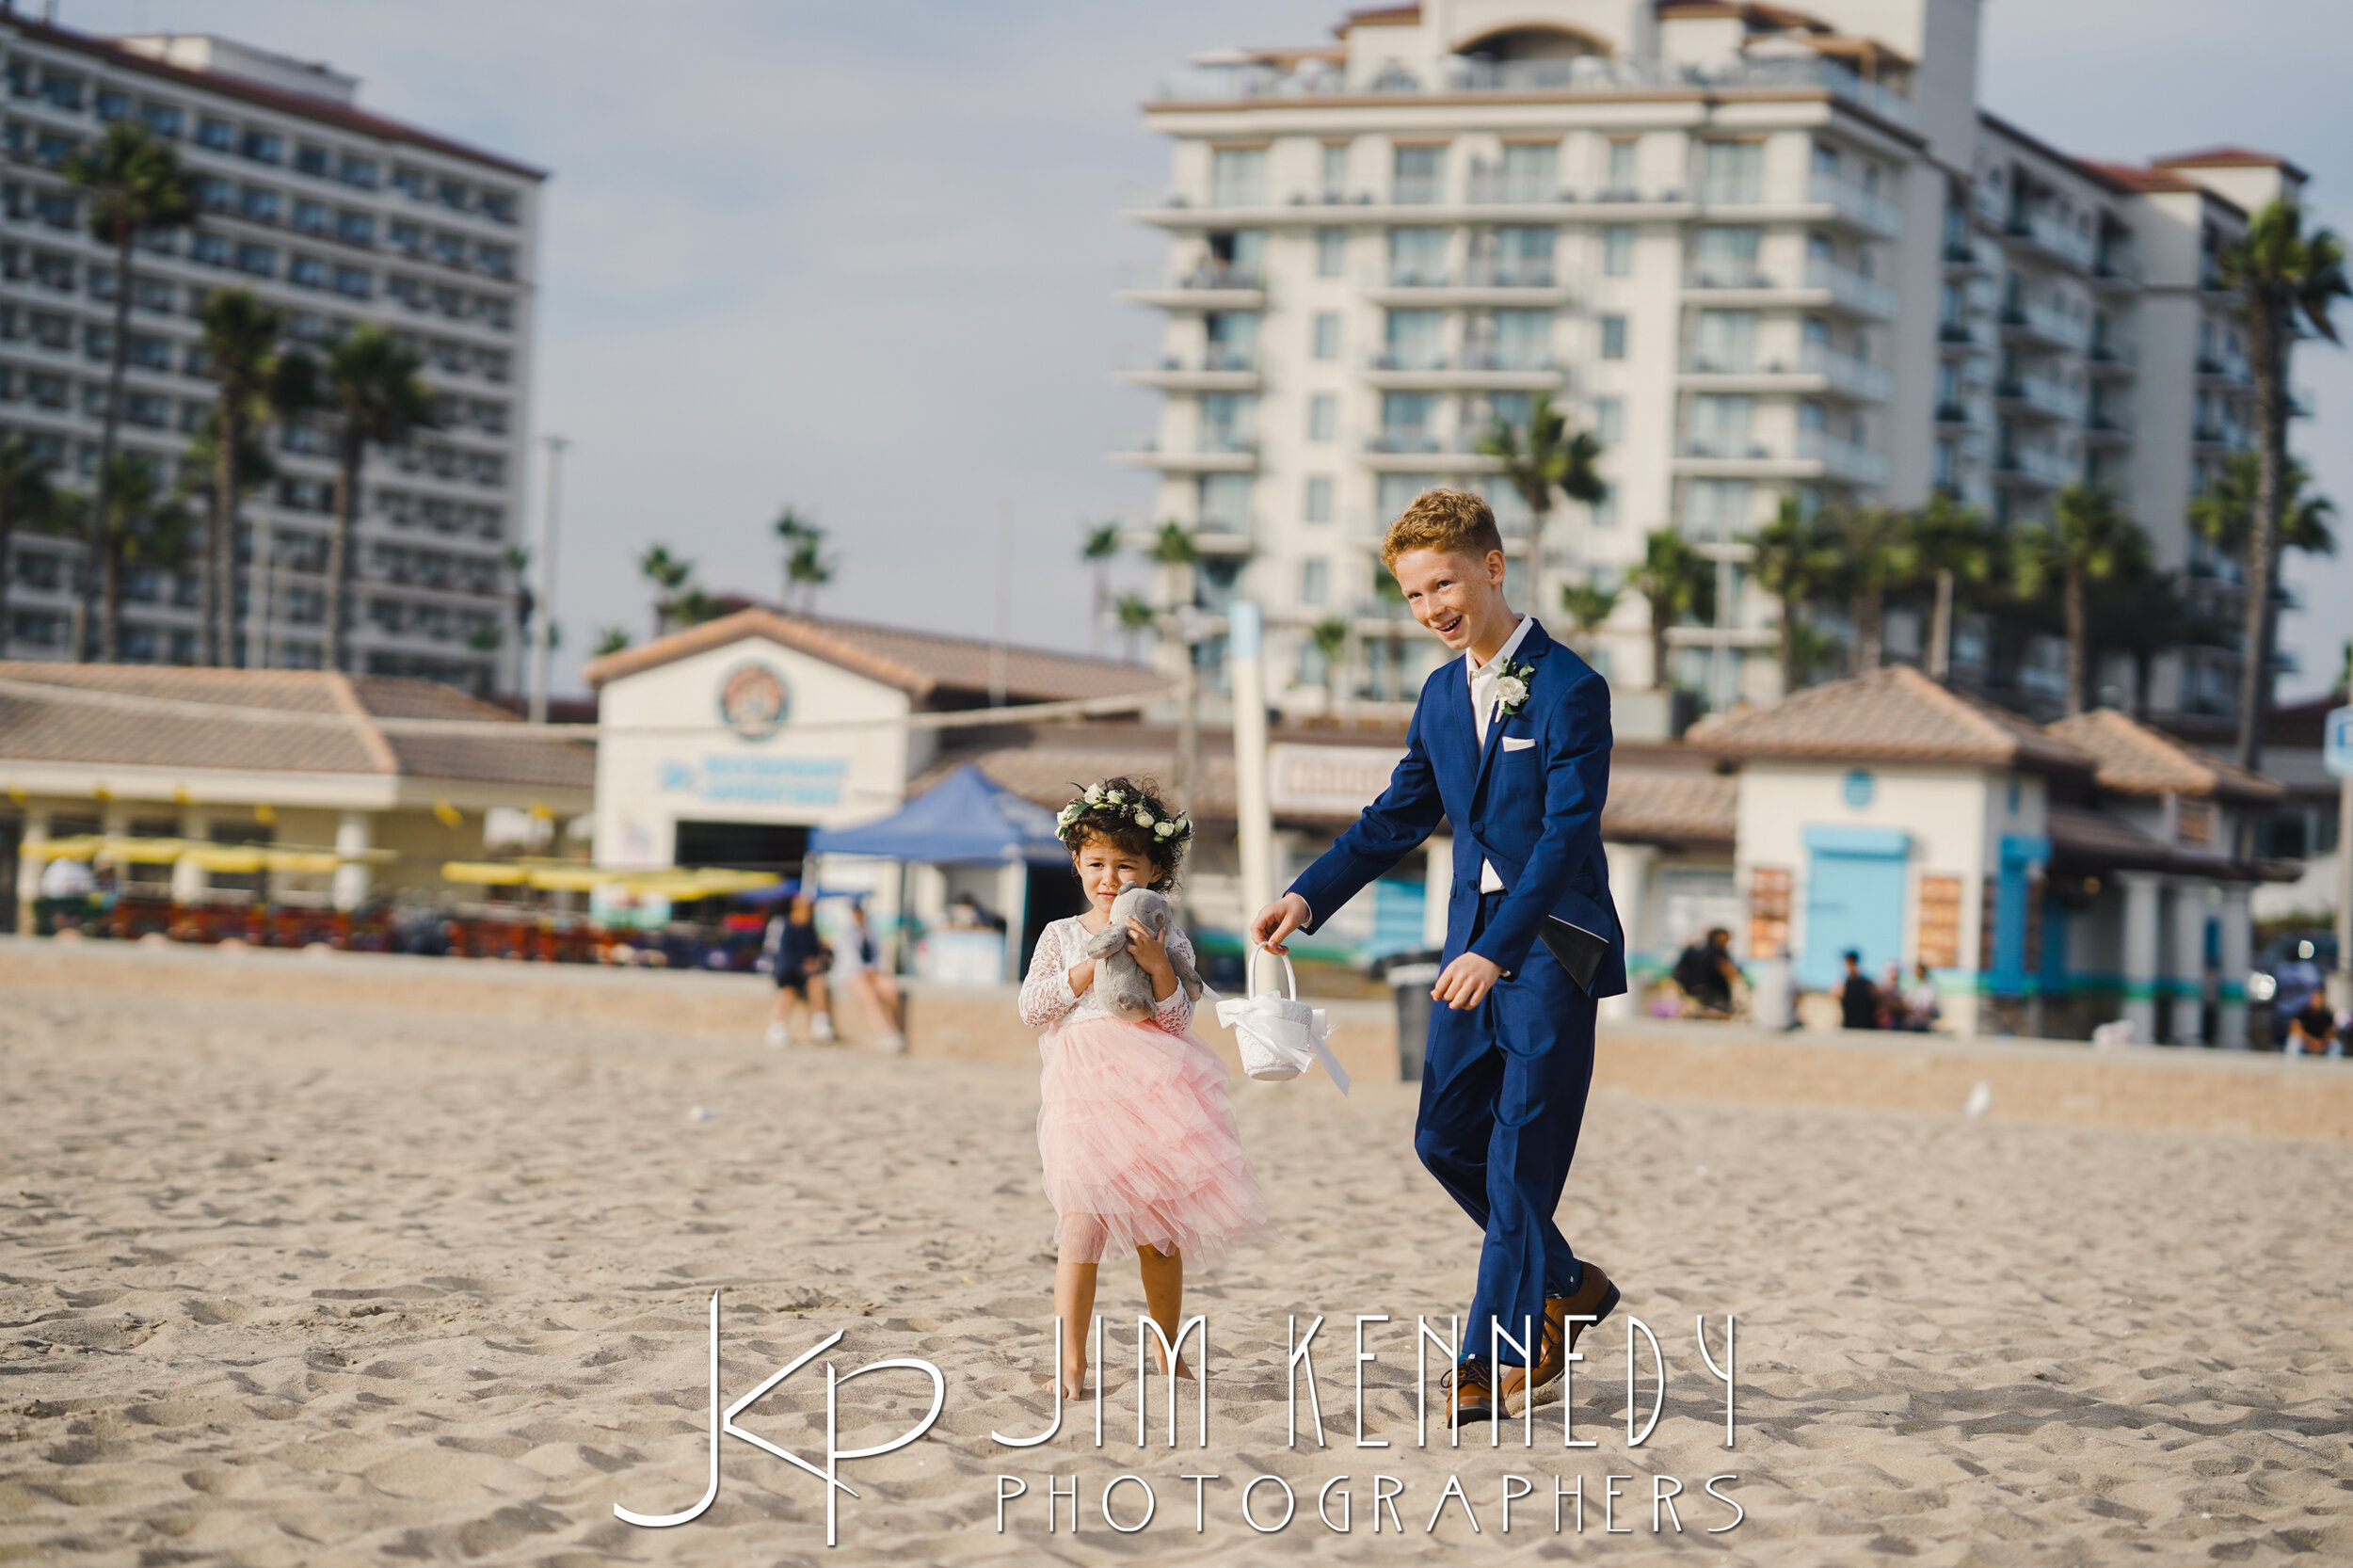 waterfront-hilton-wedding-jim-kennedy-photographers_0081.JPG